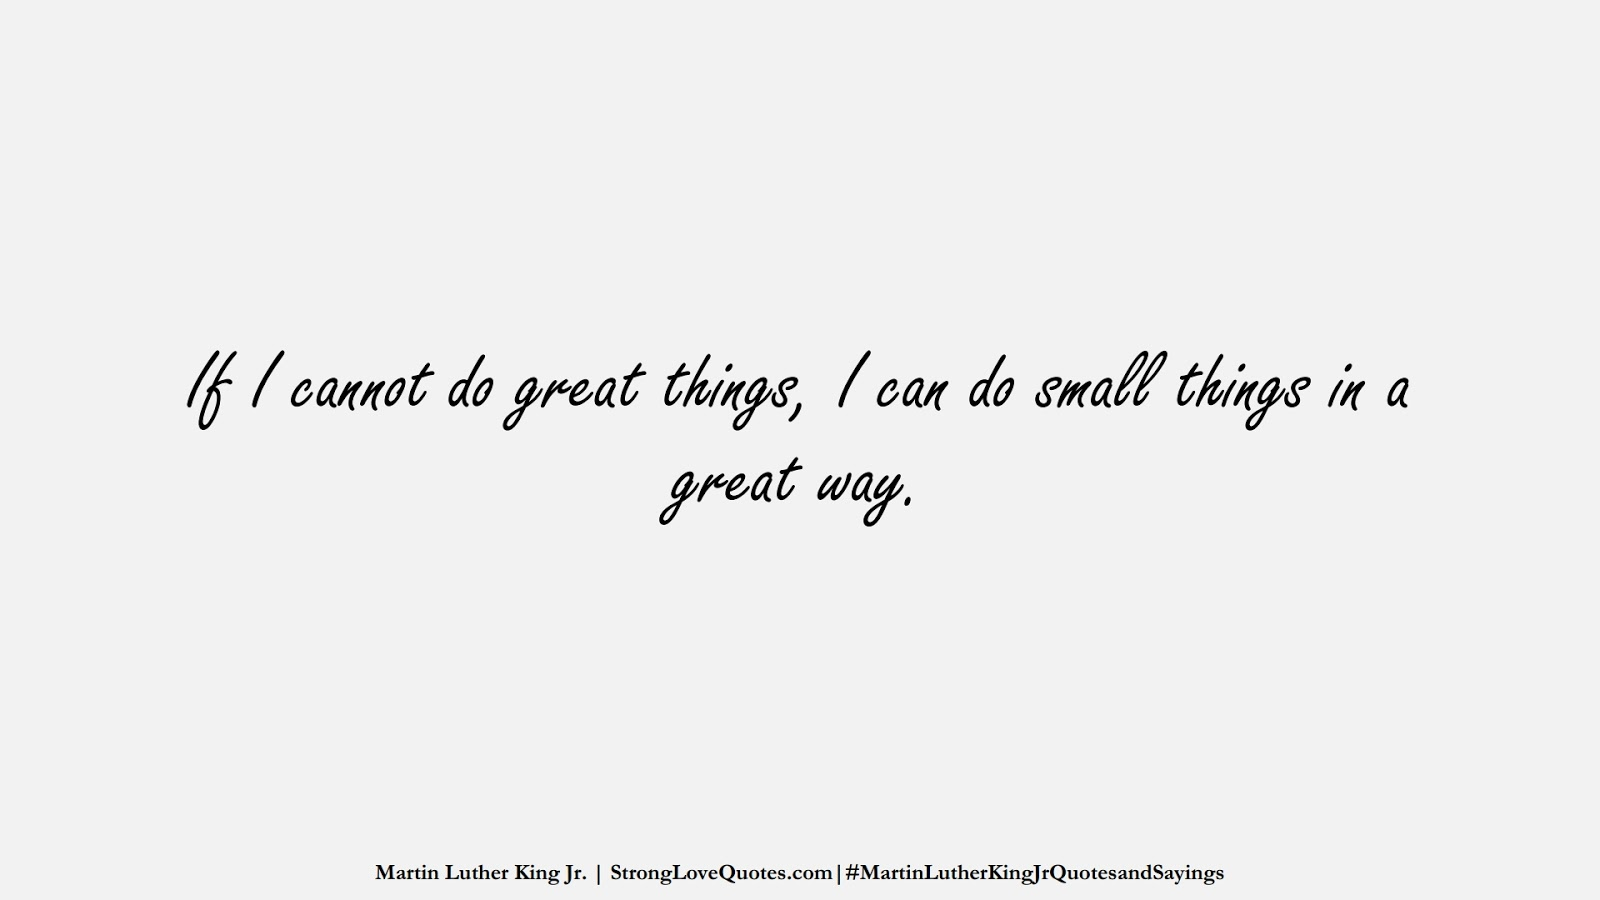 If I cannot do great things, I can do small things in a great way. (Martin Luther King Jr.);  #MartinLutherKingJrQuotesandSayings